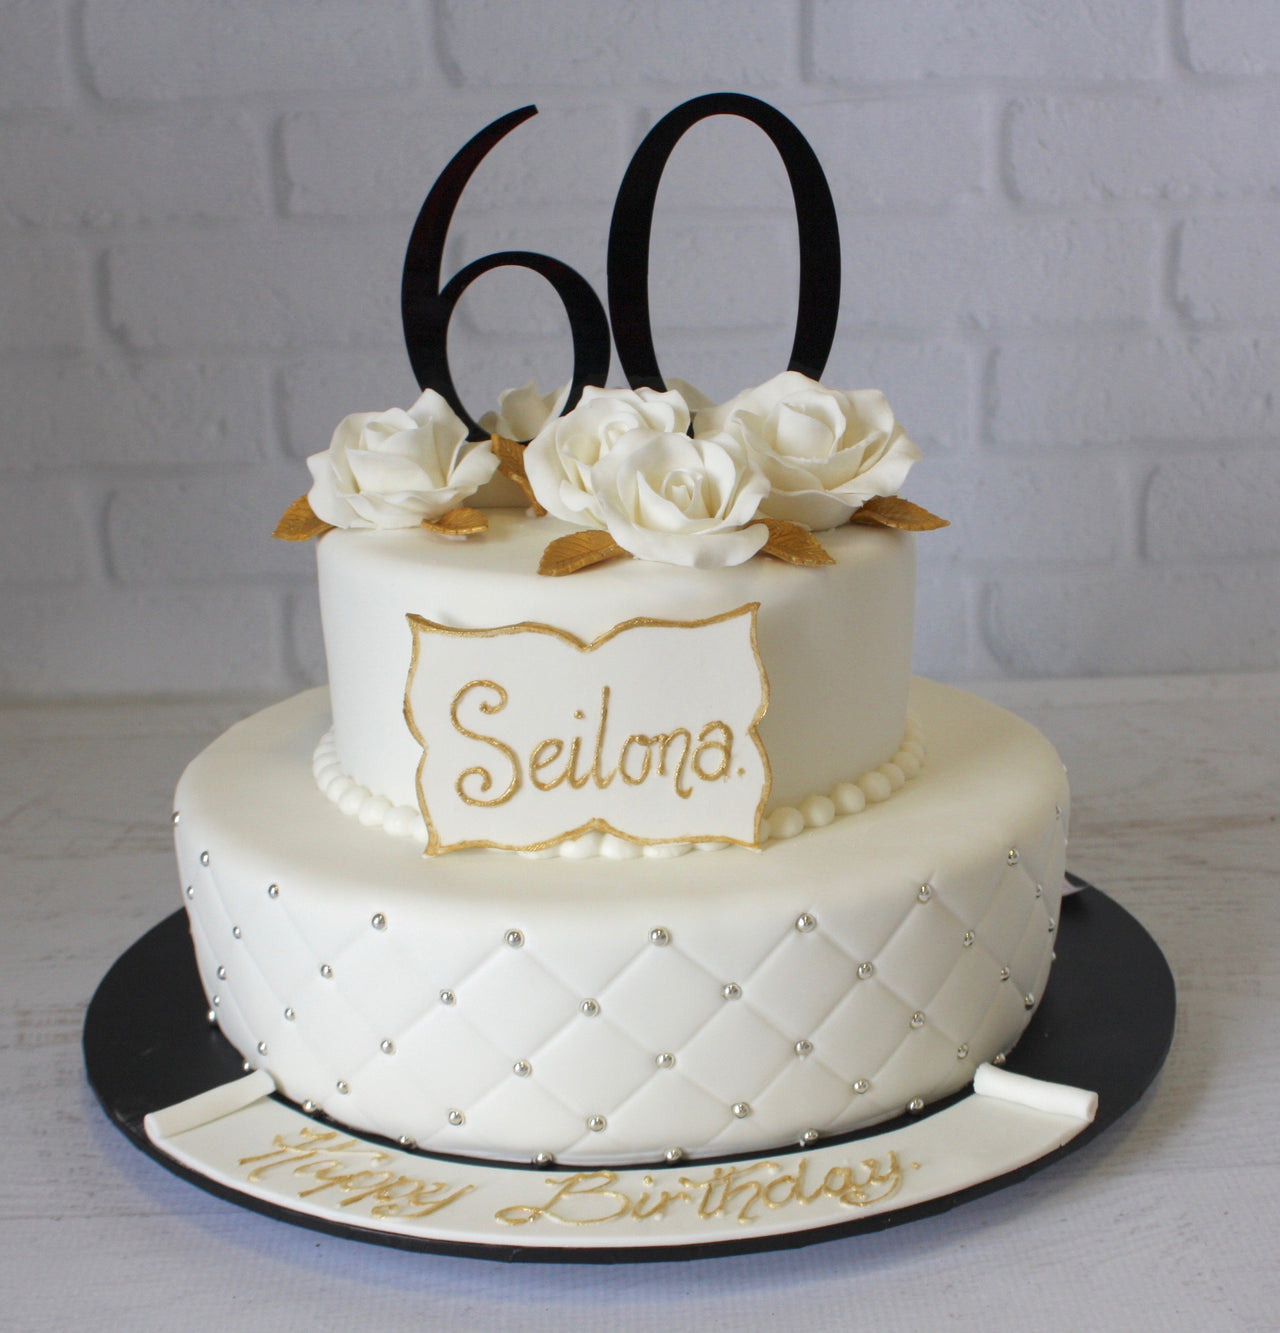 Celebration Cakes Cake Decorating Supplies NZ